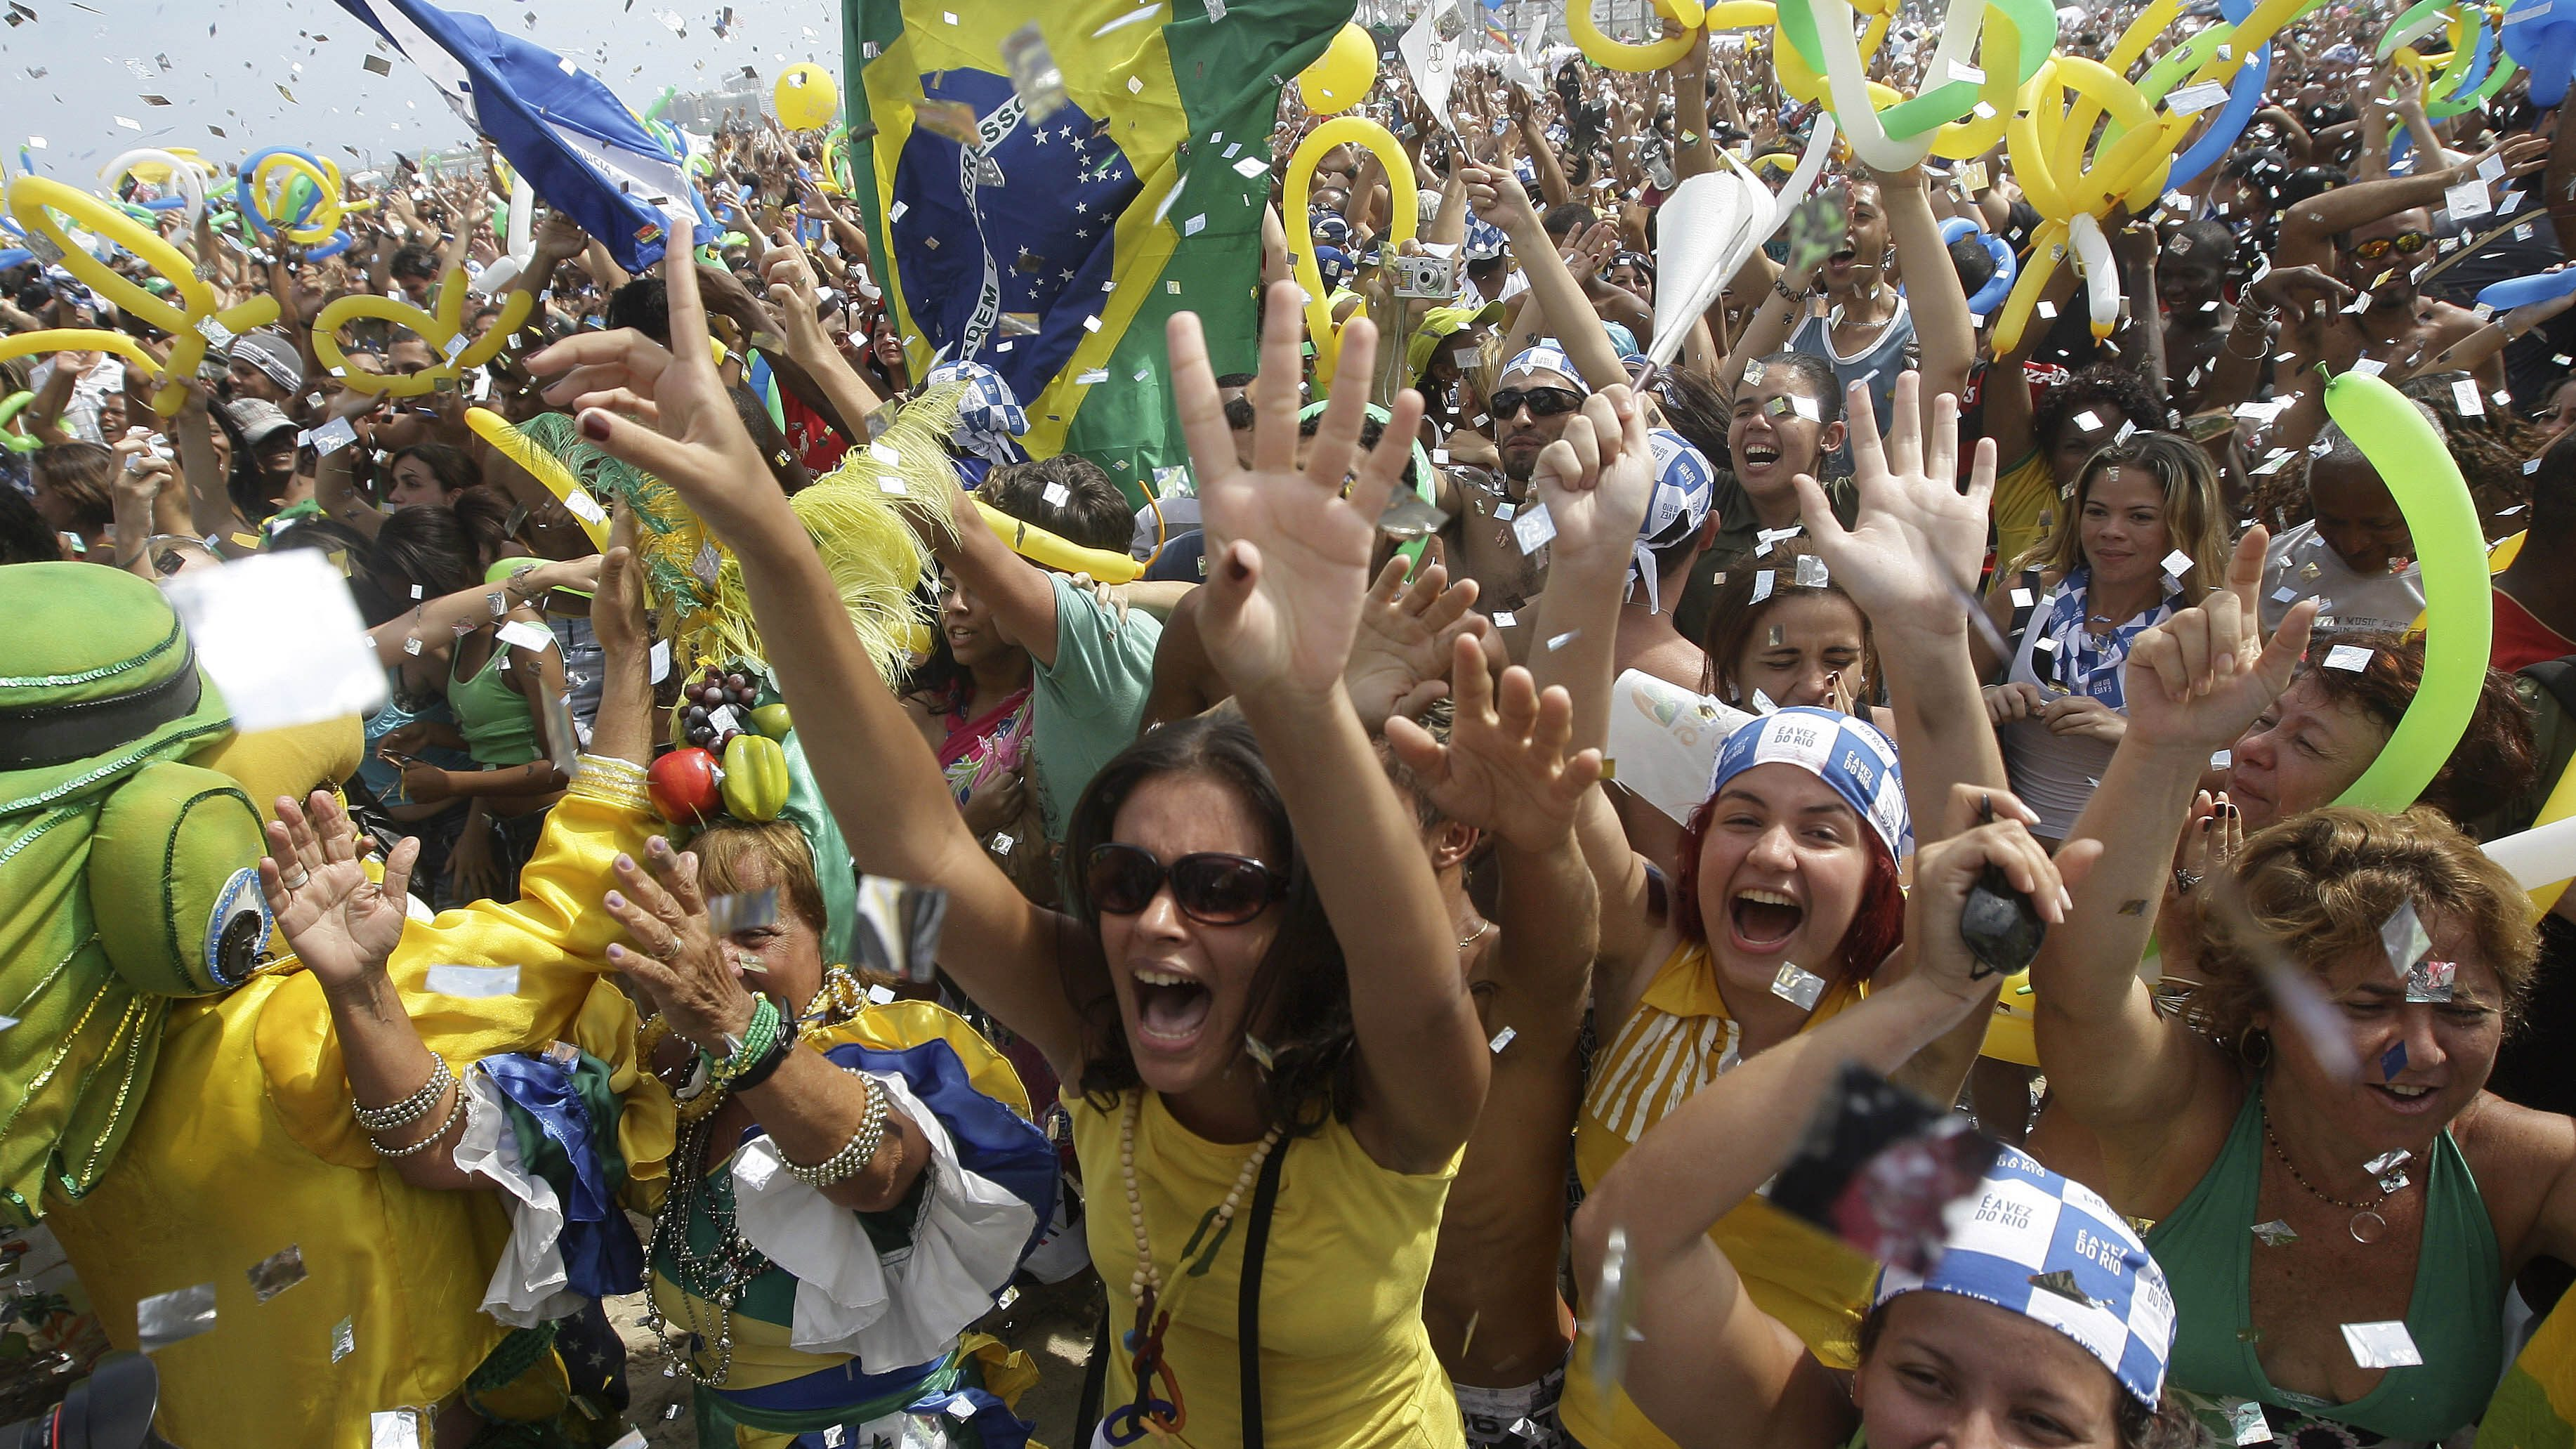 People celebrate after Rio de Janeiro won the nomination to host the 2016 Olympic Games at the Copacabana beach, in Rio de Janeiro, Friday, Oct. 2, 2009. Nearly 50,000 people erupted in celebration when Rio was announced host, jumping and cheering in a Carnival-like party on Copacabana beach. (AP Photo/Silvia Izquierdo)